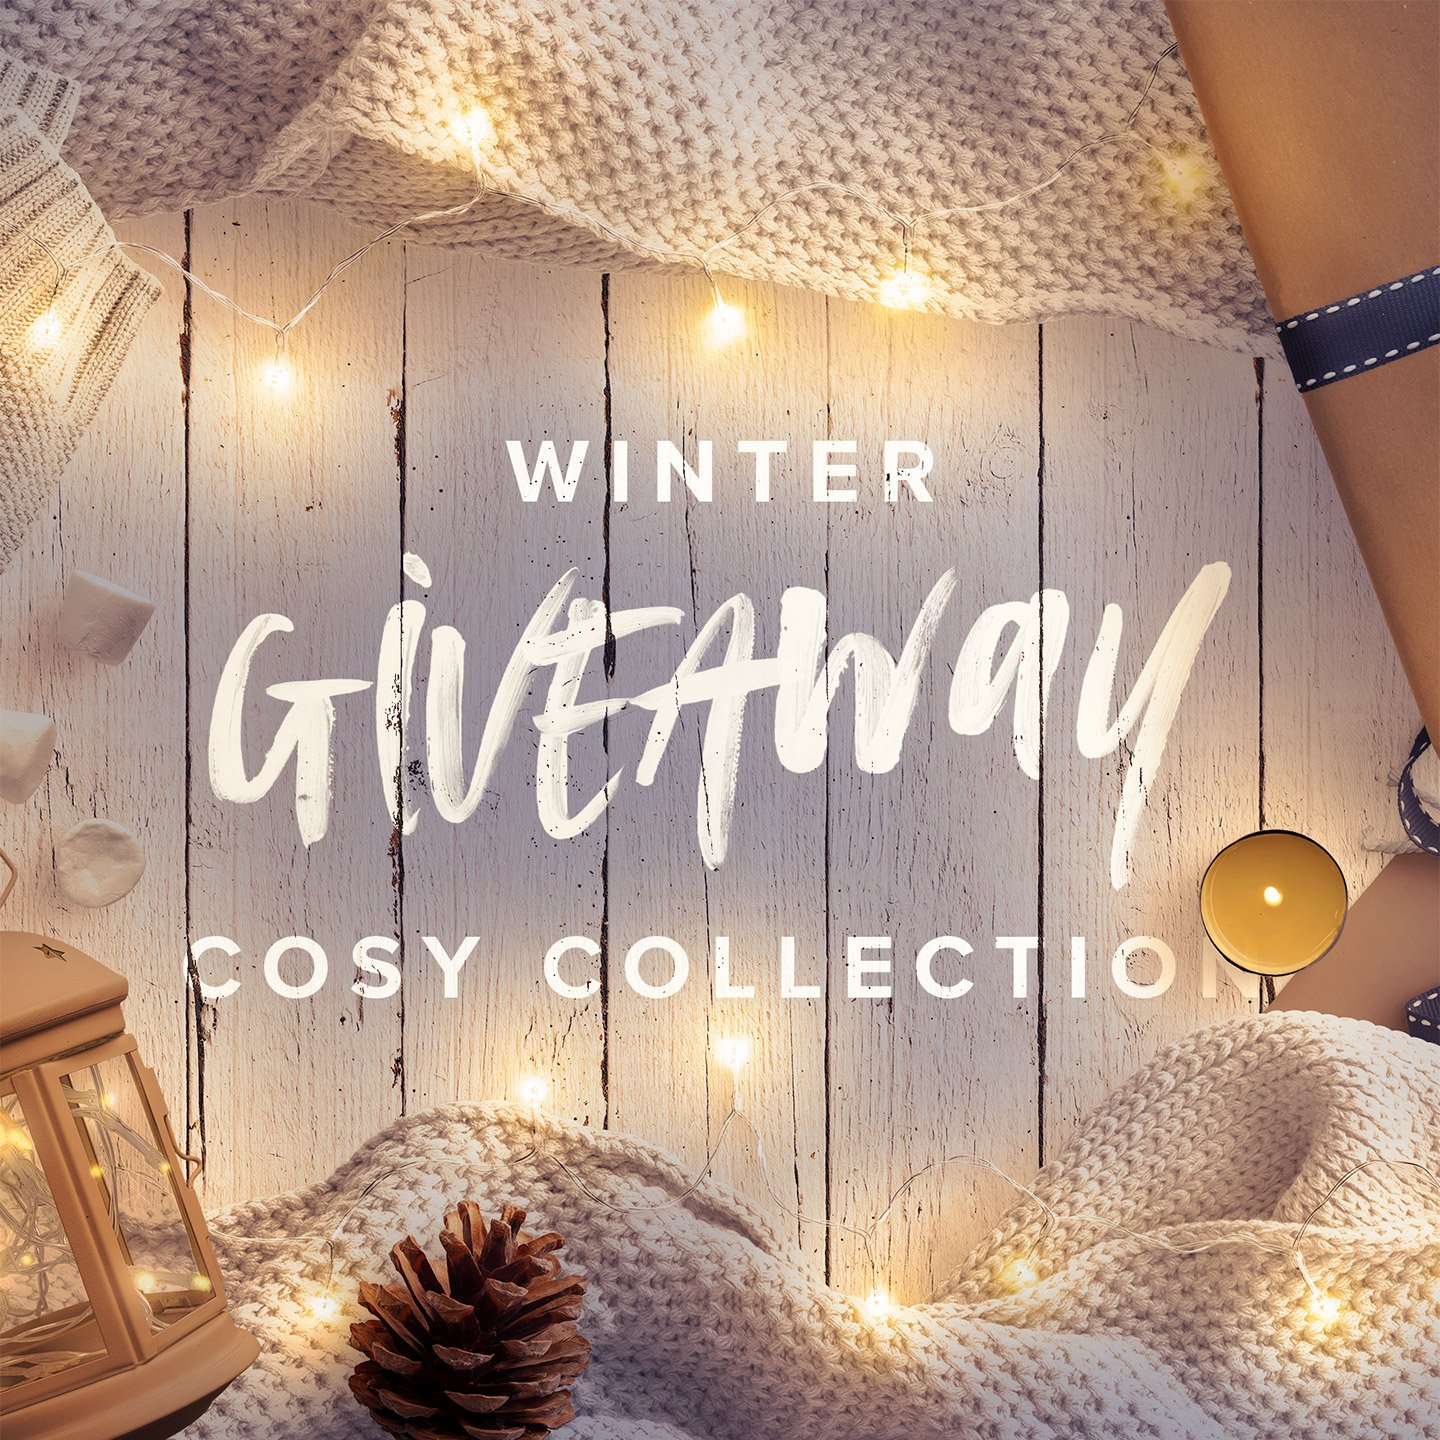 giveaway winter cosy collection